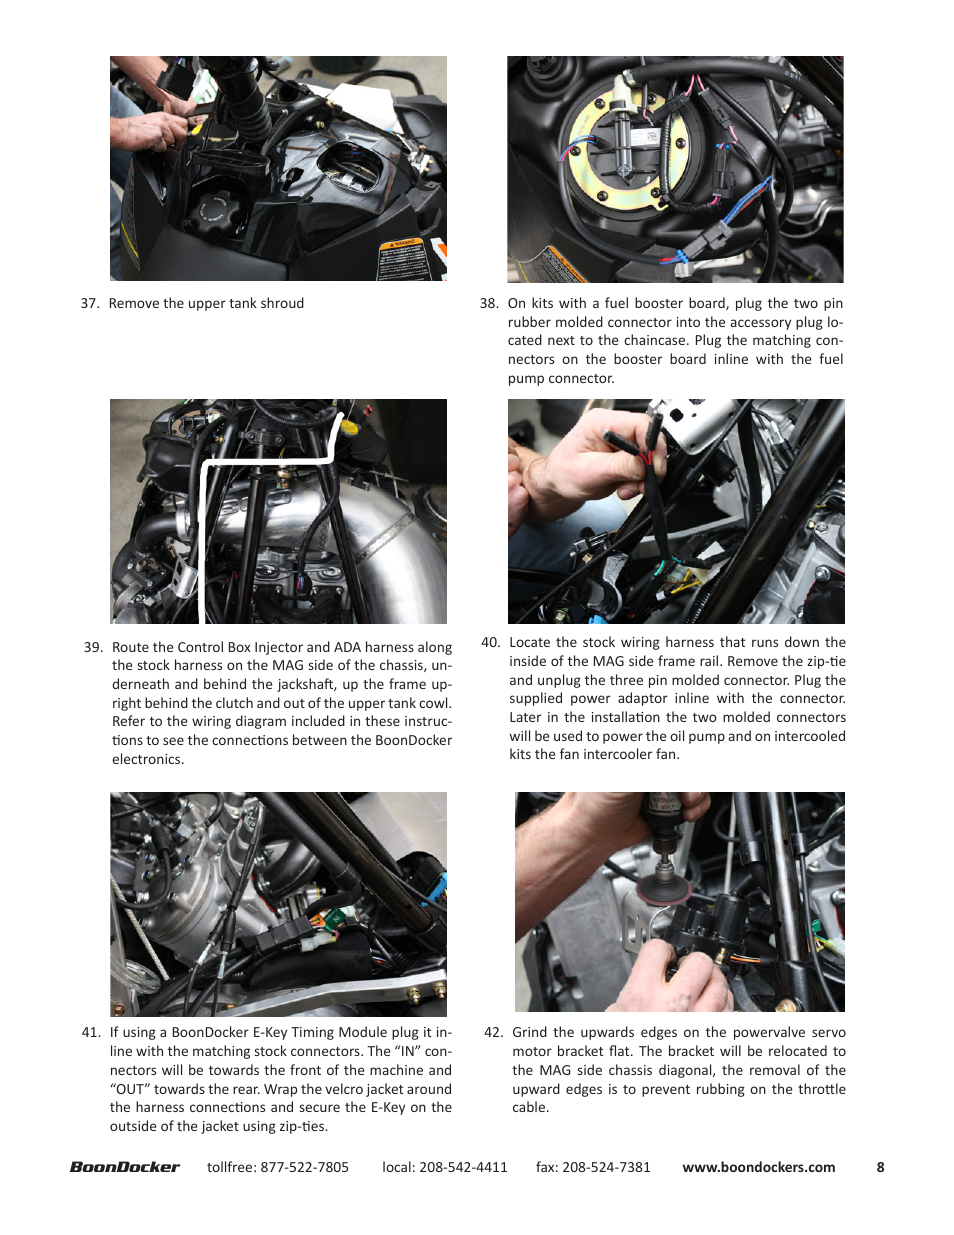 Boondocker Arctic Cat 2012 14 Proclimb M8 Intercooled User Manual 3 Pin Wiring Diagram Page 8 17